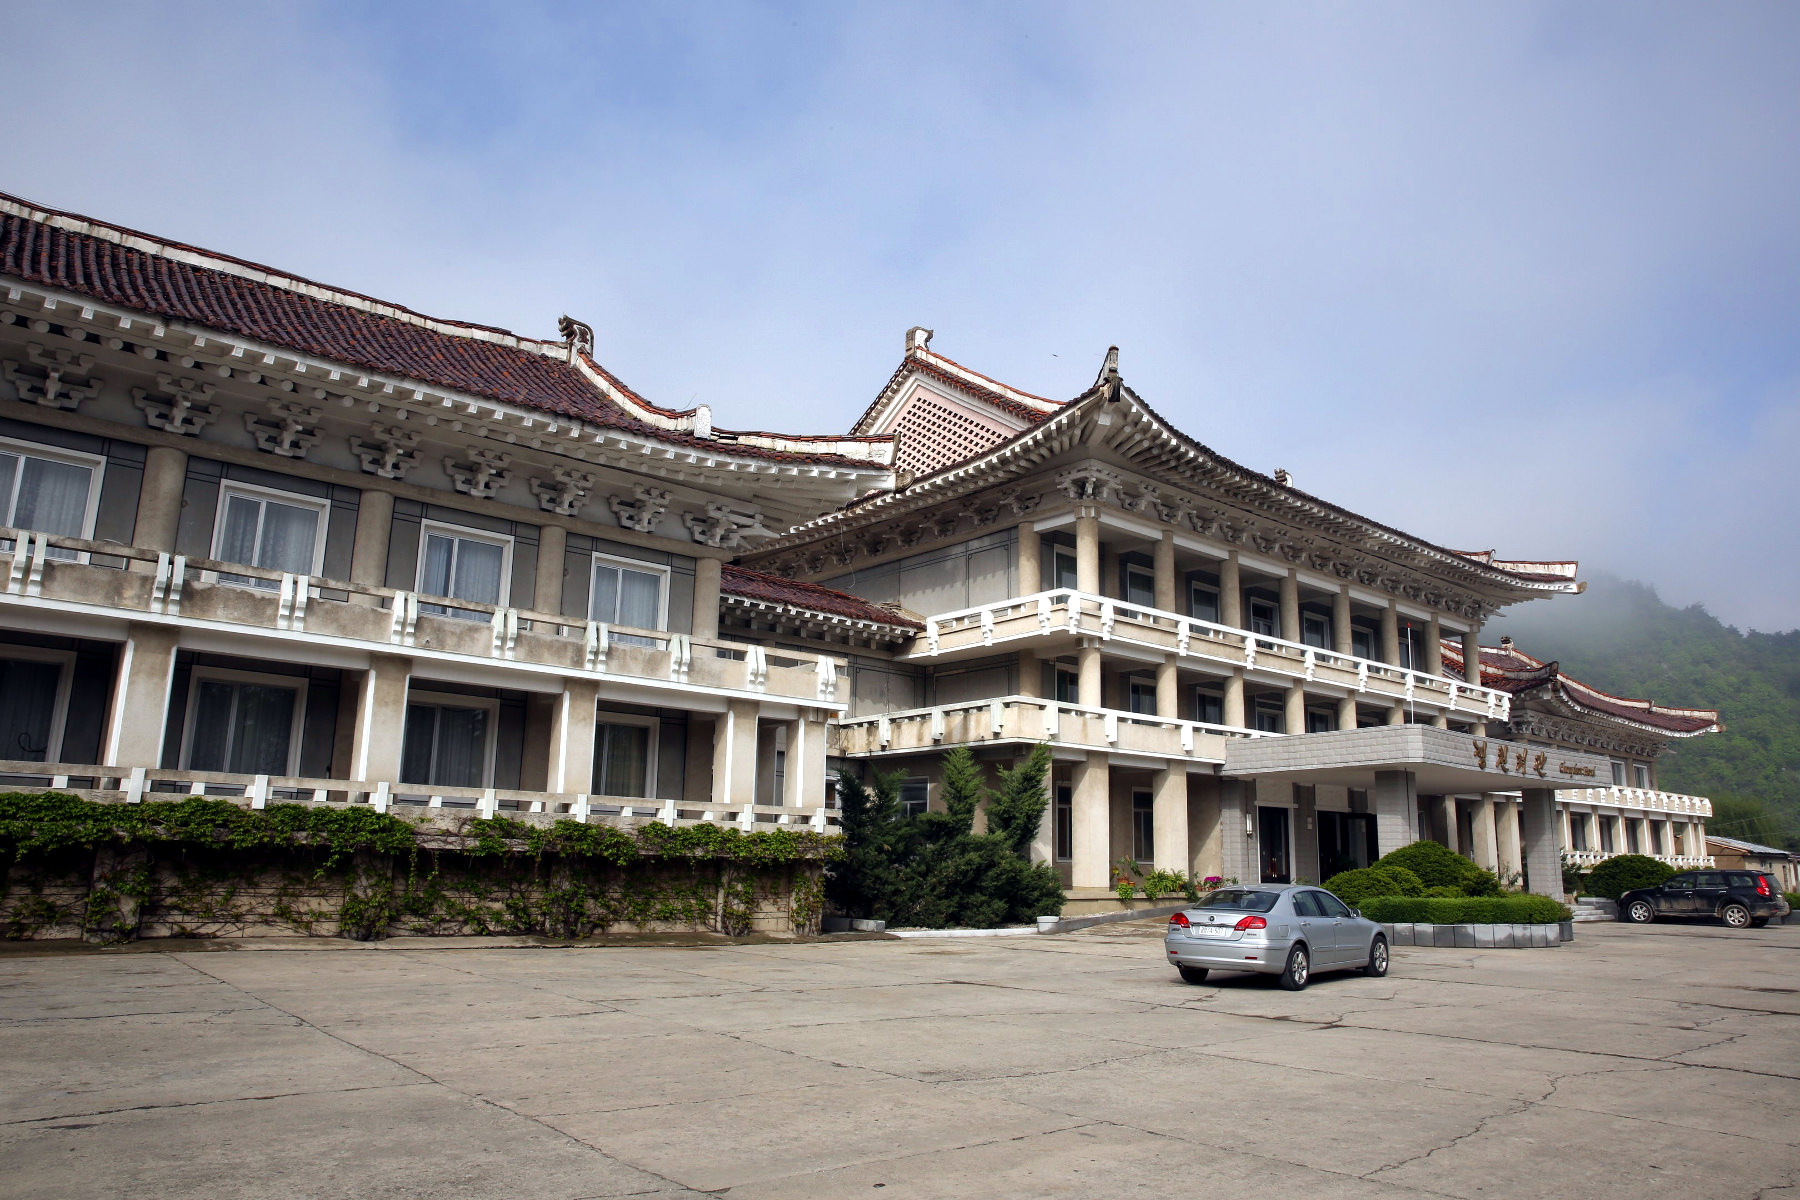 The Chongchon Hotel in Hyangsan Town, Mount Myohyang, DPRK (North Korea). Tour arranged by KTG